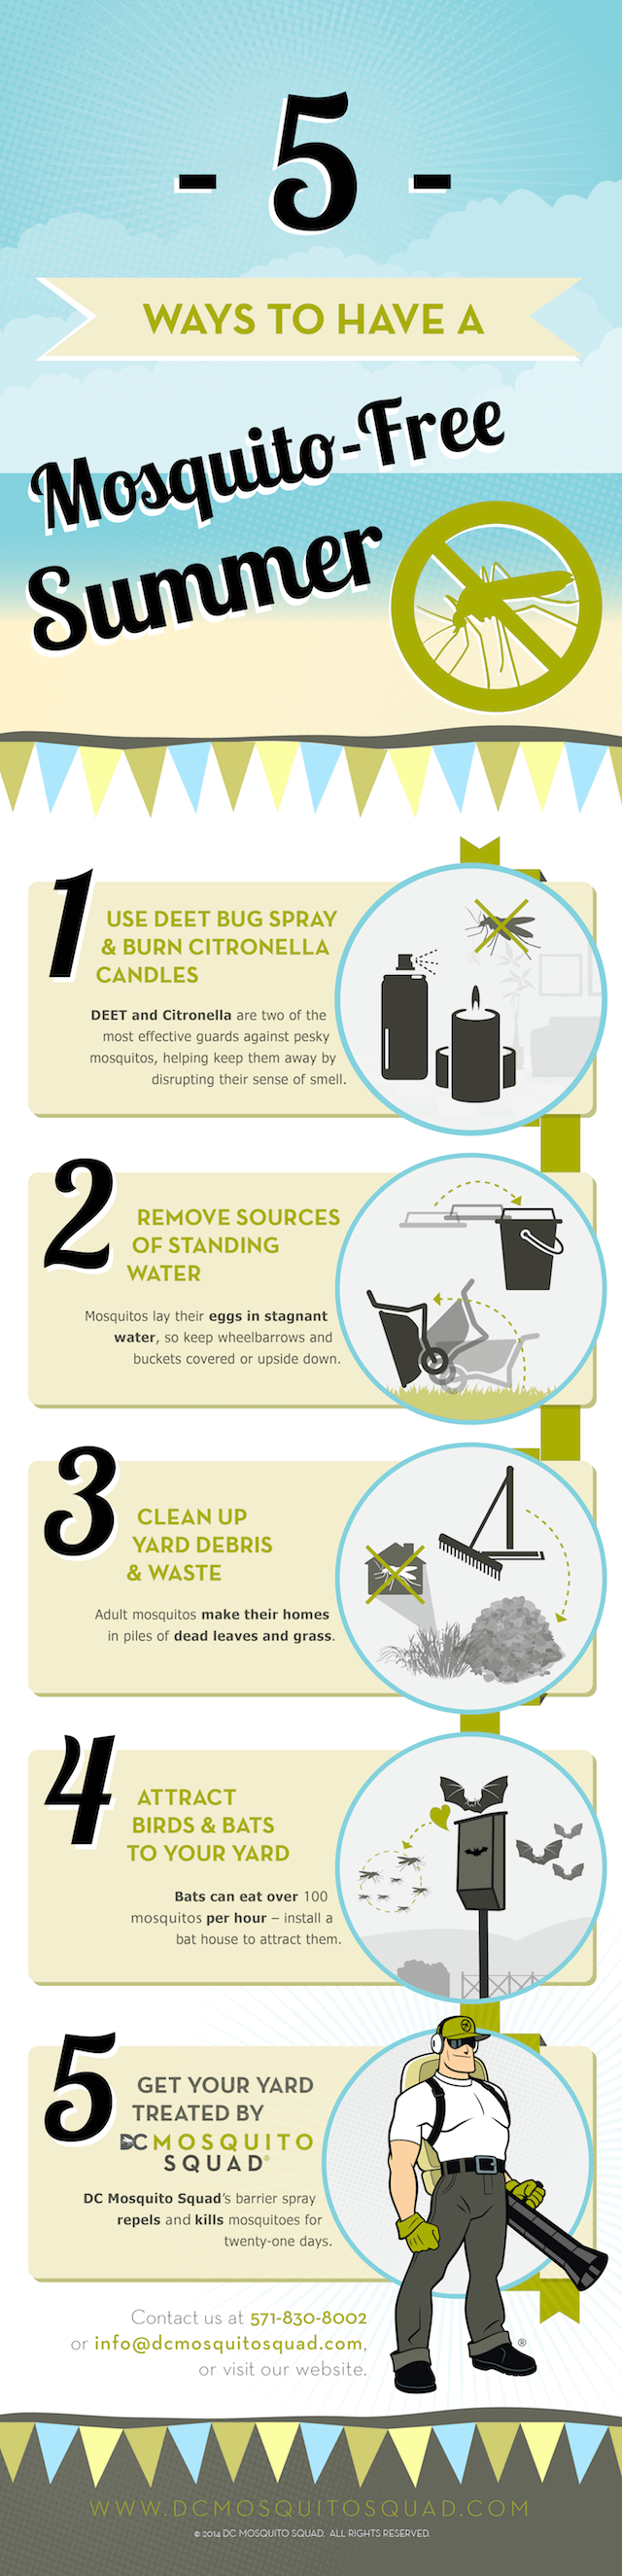 Infographic showing 5 Ways to Have a Mosquito-Free Summer